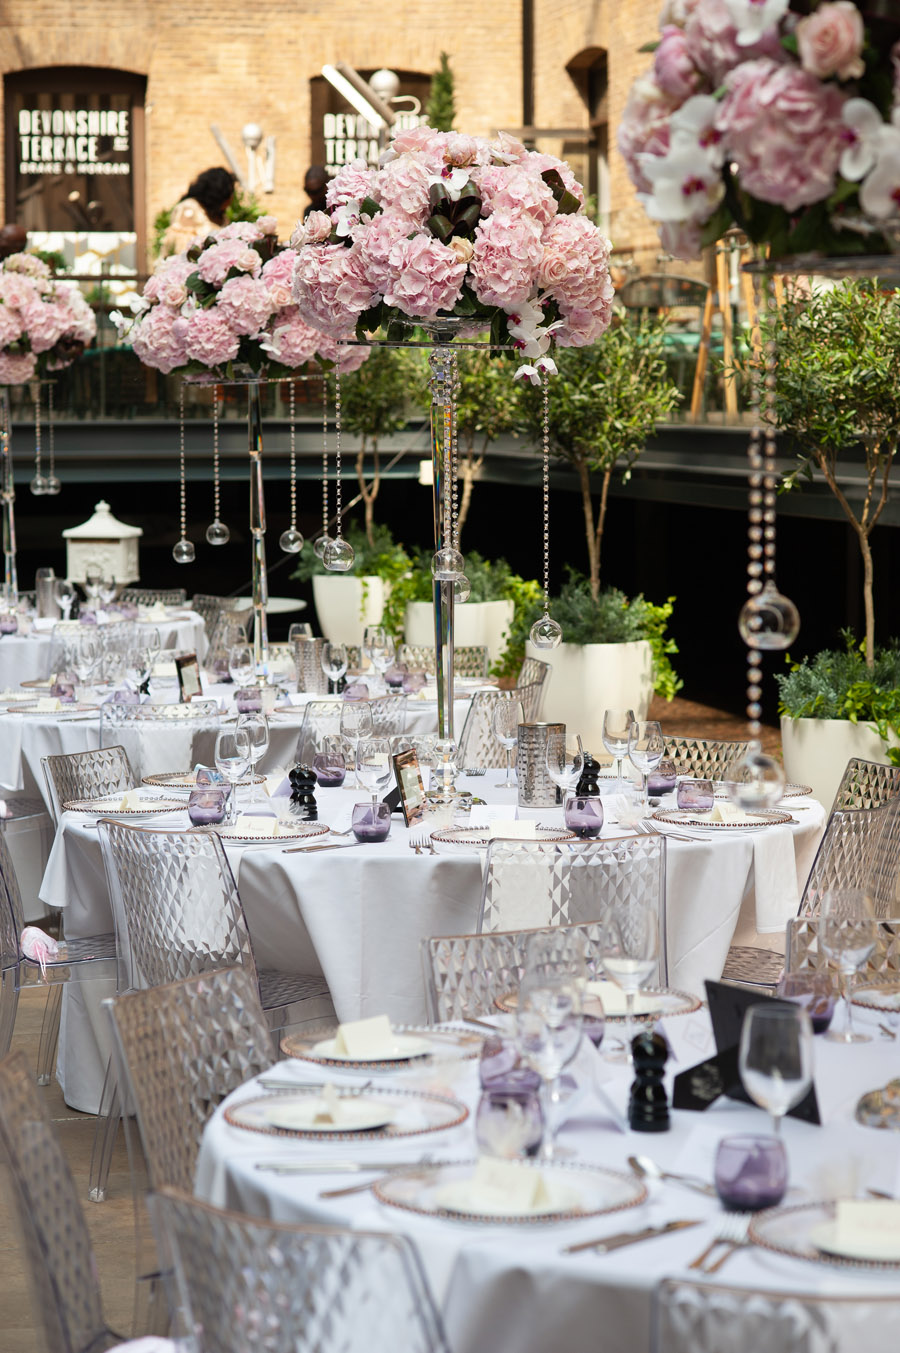 Chantel & Andrew's chic, modern and timeless wedding at Devonshire Terrace, with Carla Thomas Photography (22)